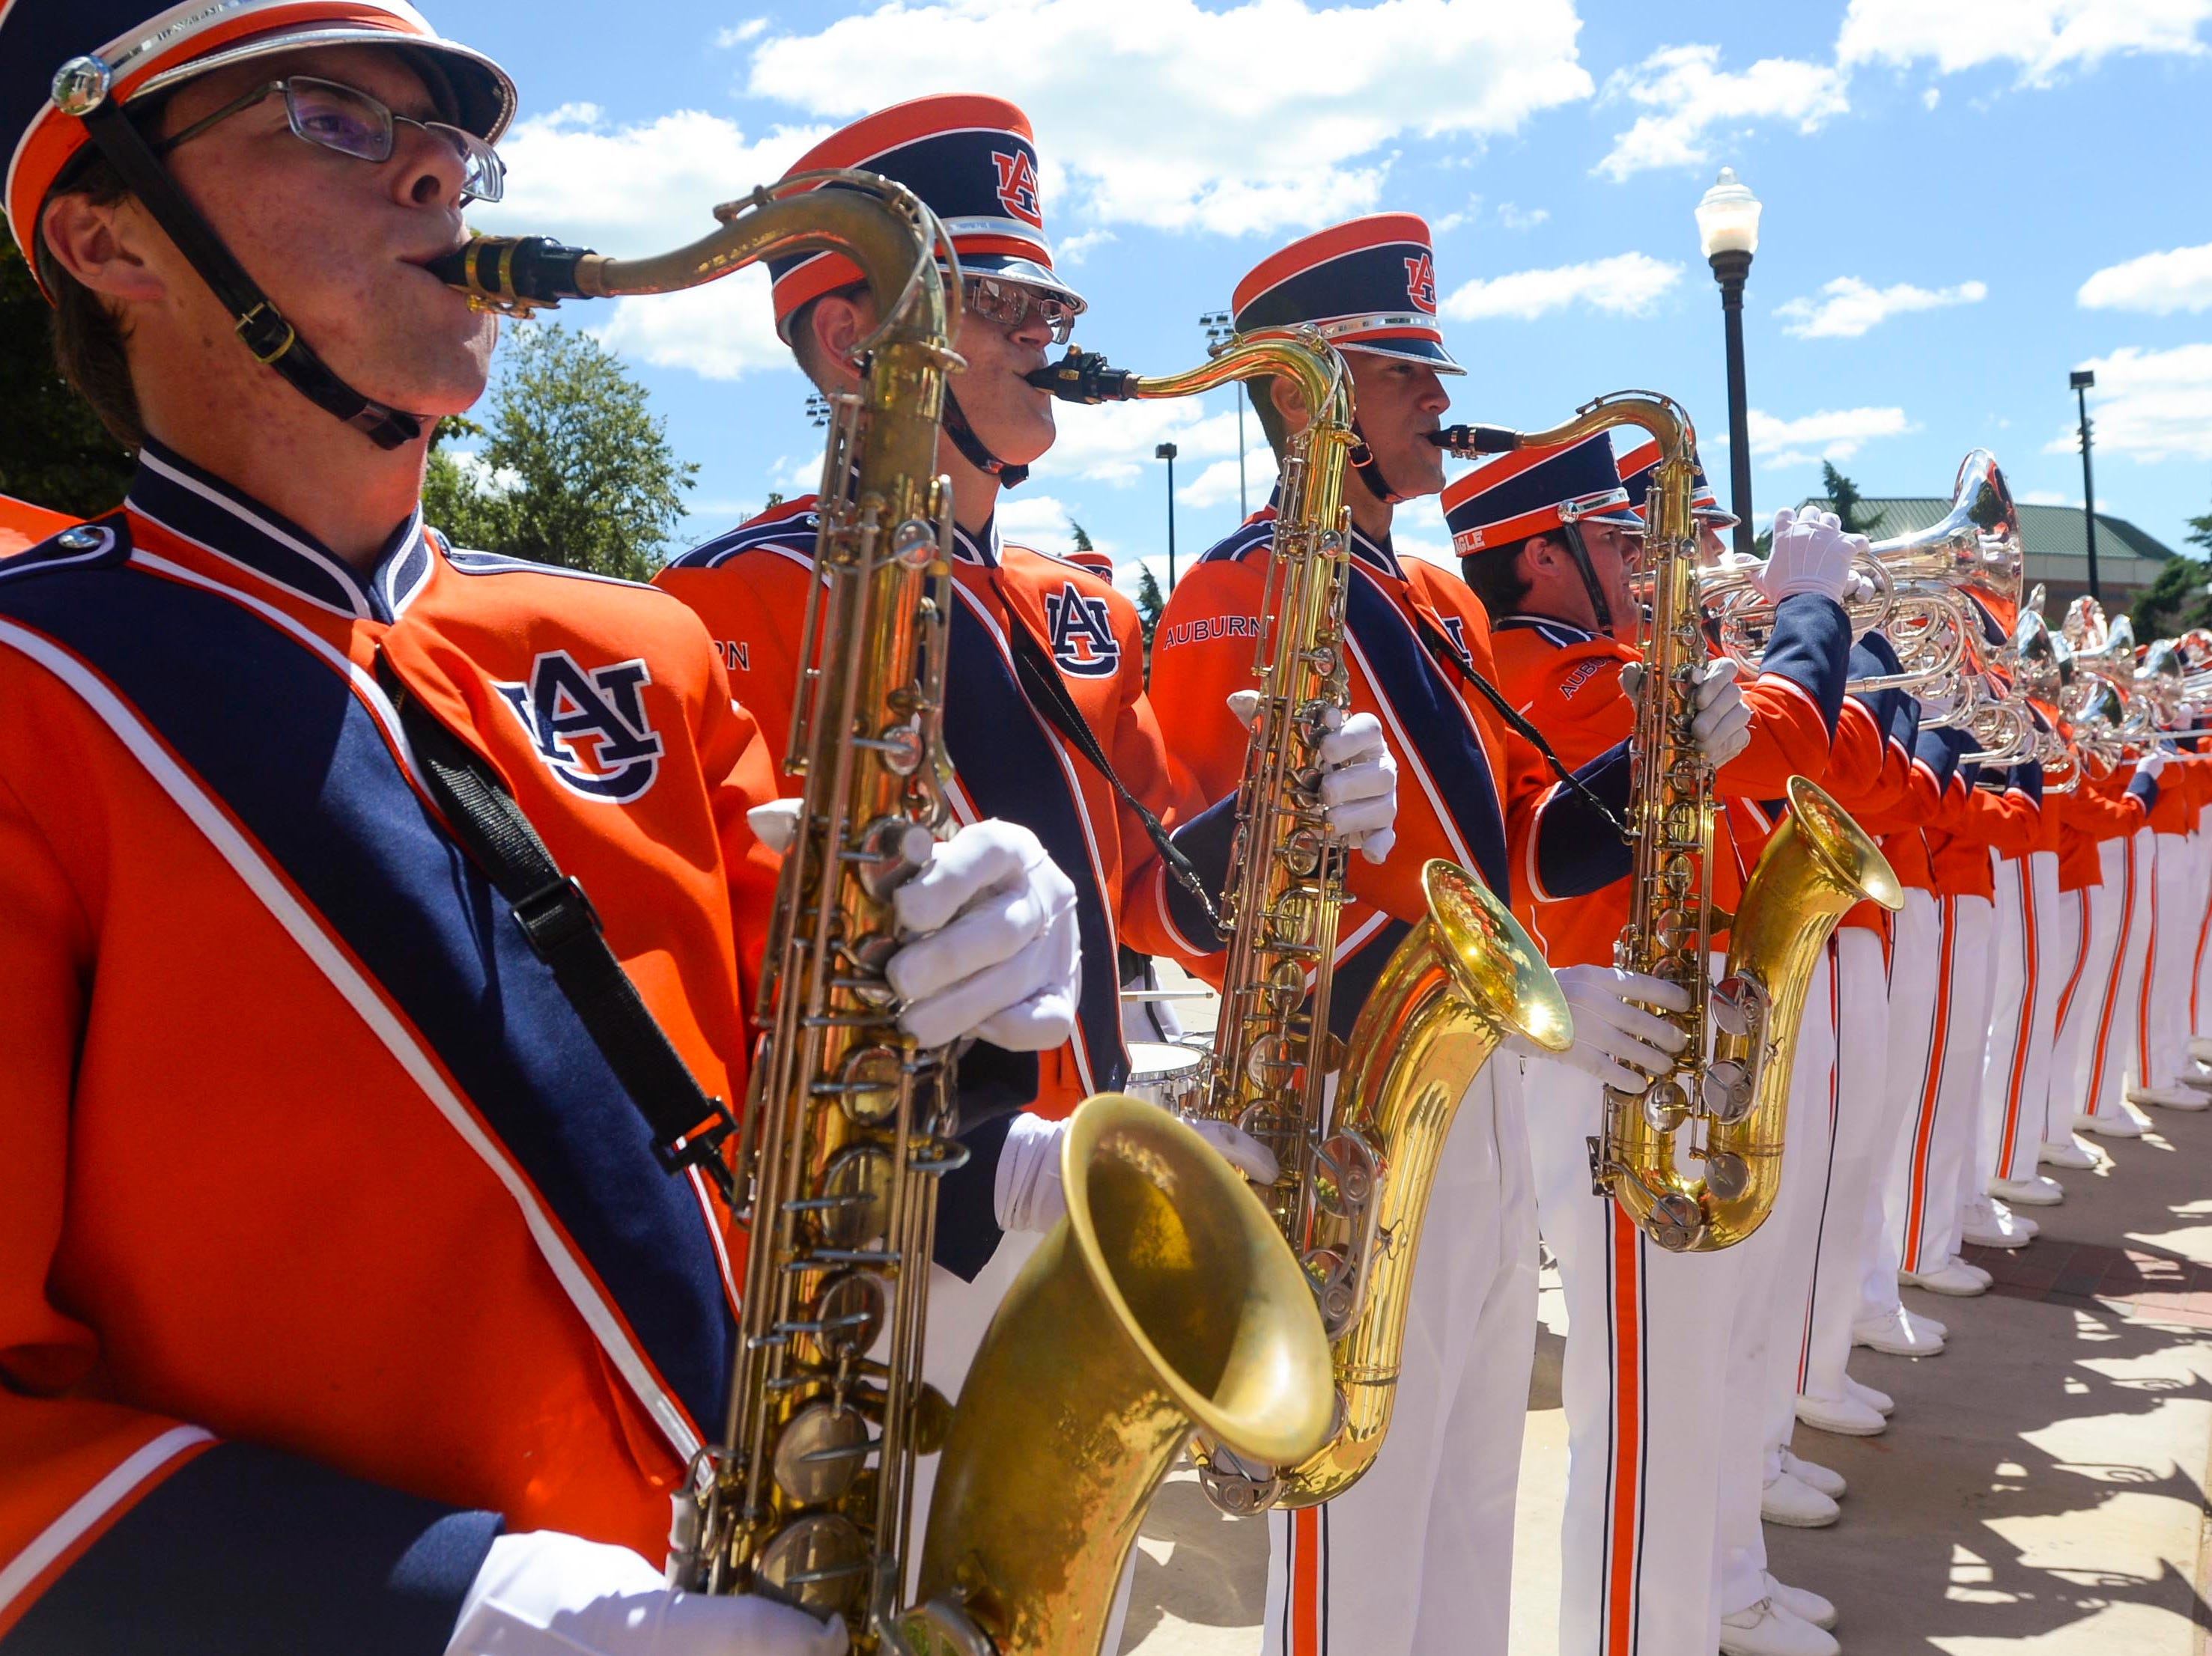 Sep 15, 2018; Auburn, AL, USA;  Auburn Tigers band performs before the game against the LSU Tigers at Jordan-Hare Stadium. Mandatory Credit: Julie Bennett-USA TODAY Sports